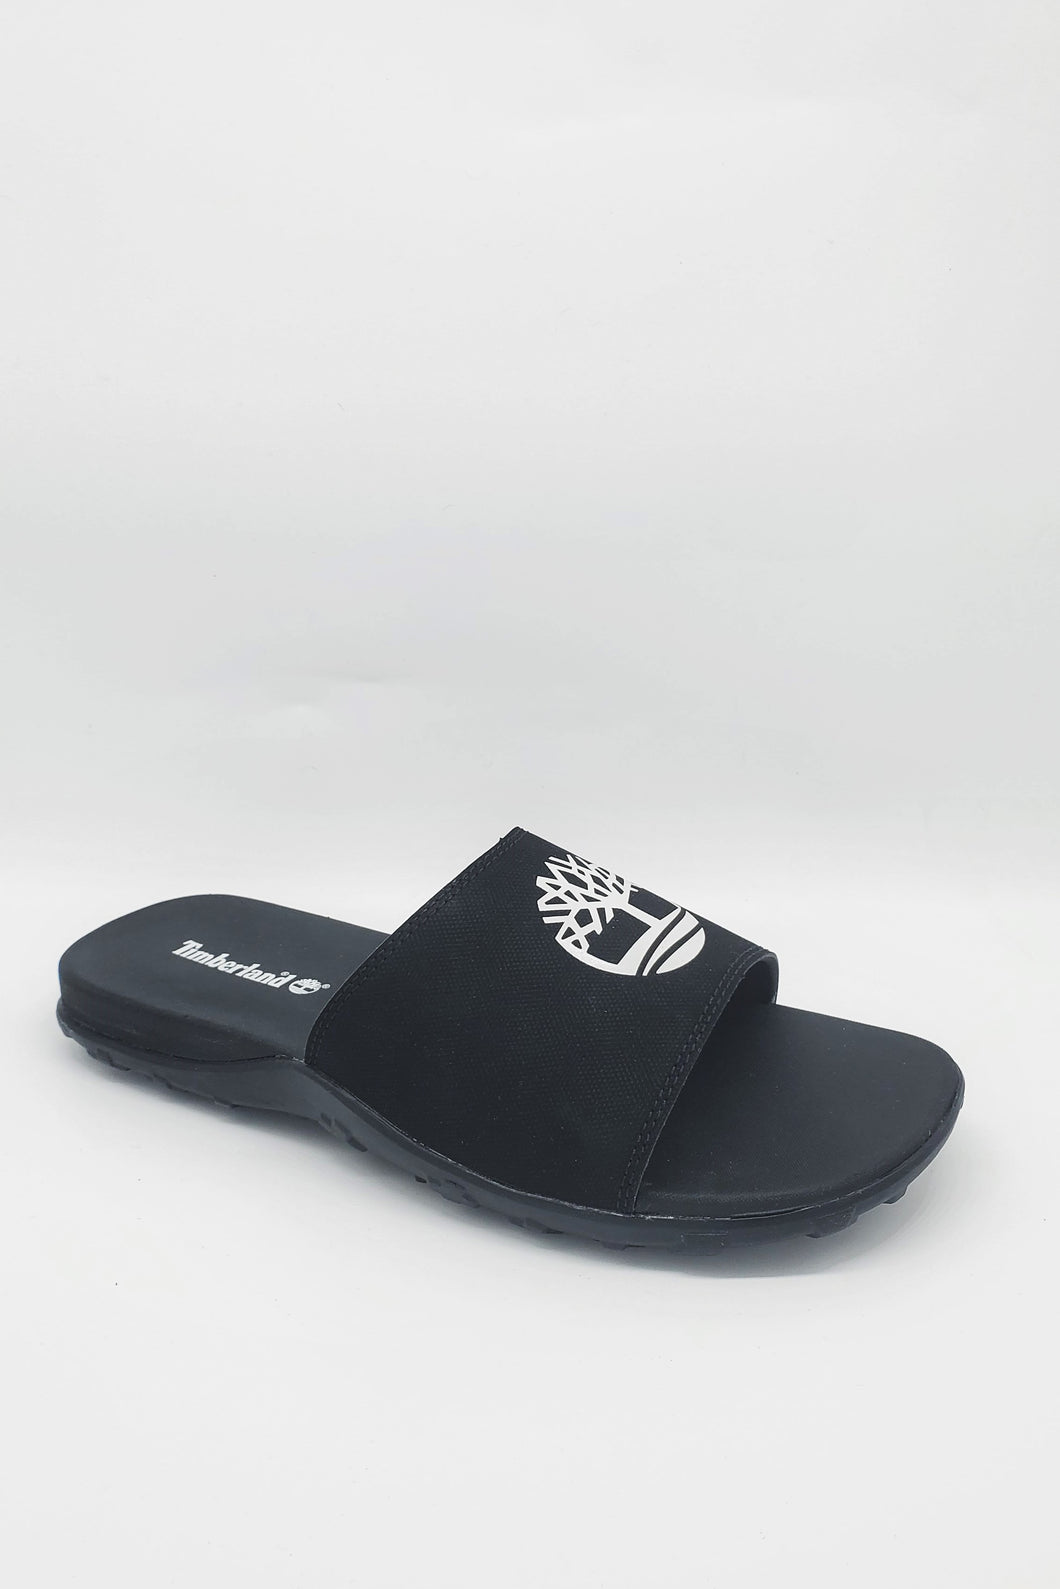 Timberland Mens Fells Sport Slide - 2 Colors